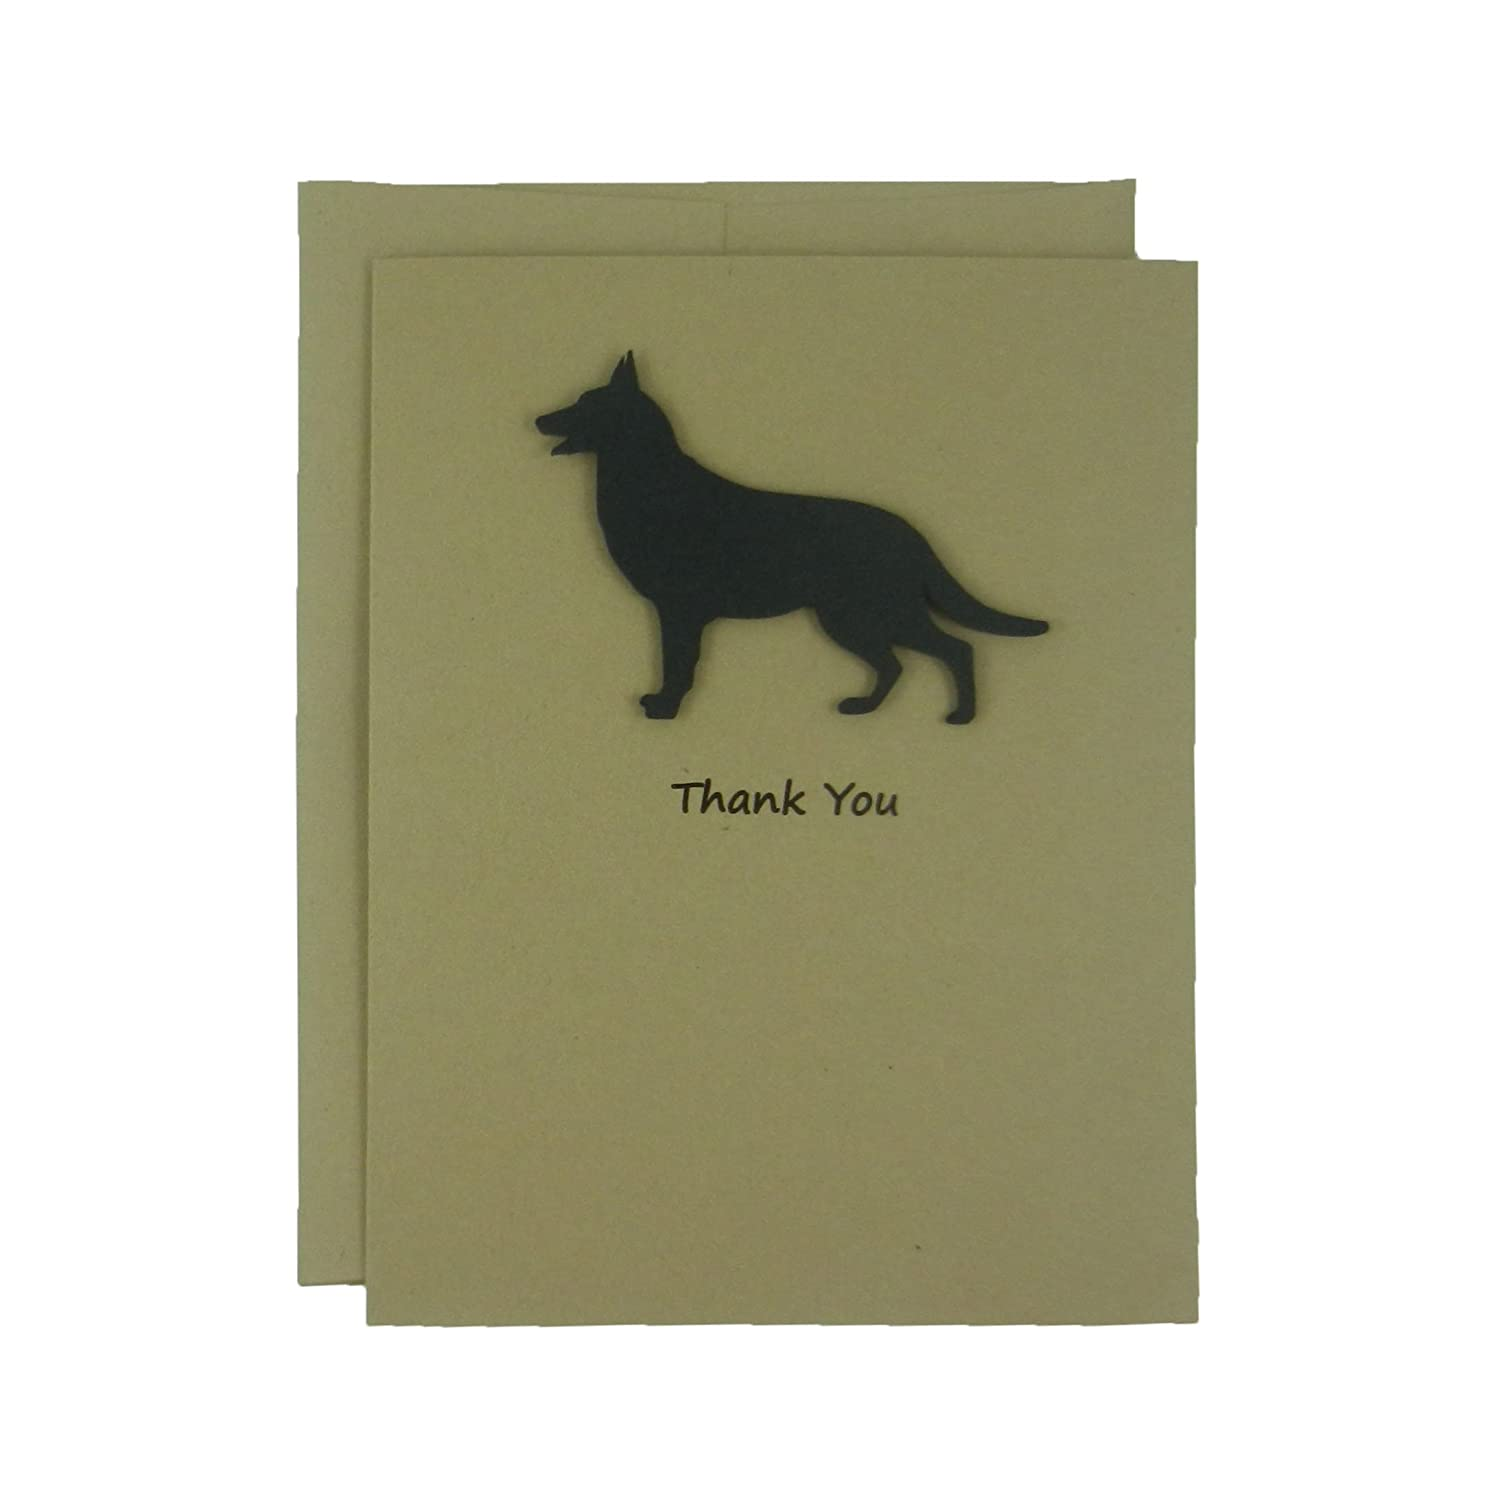 German Shepherd Thank You Cards - Handmade Black Dog Kraft Thank You Note Cards - Greeting Card 10 Pack or Single Card Pick inside